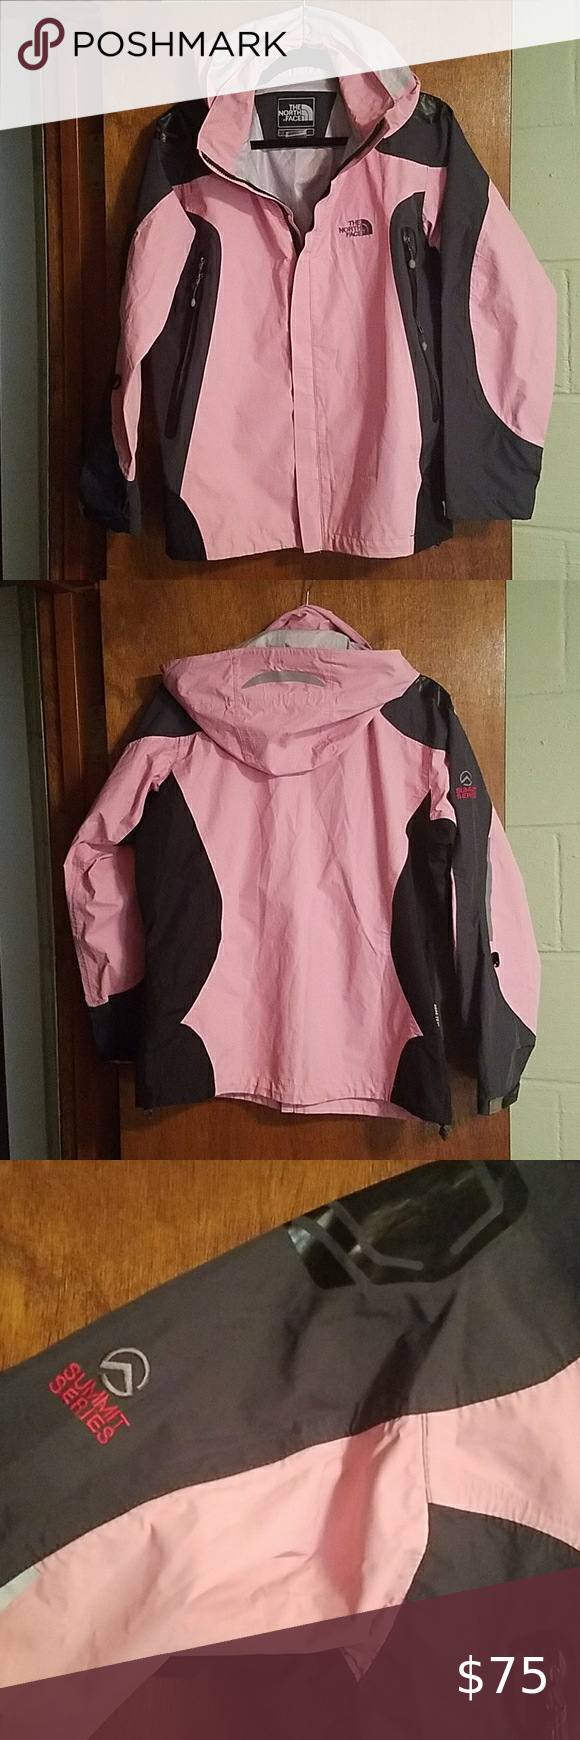 End Of Season Clearance Summit Series Shell Pink North Face Jacket North Face Jacket Womens North Face Fleece Jacket [ 1740 x 580 Pixel ]